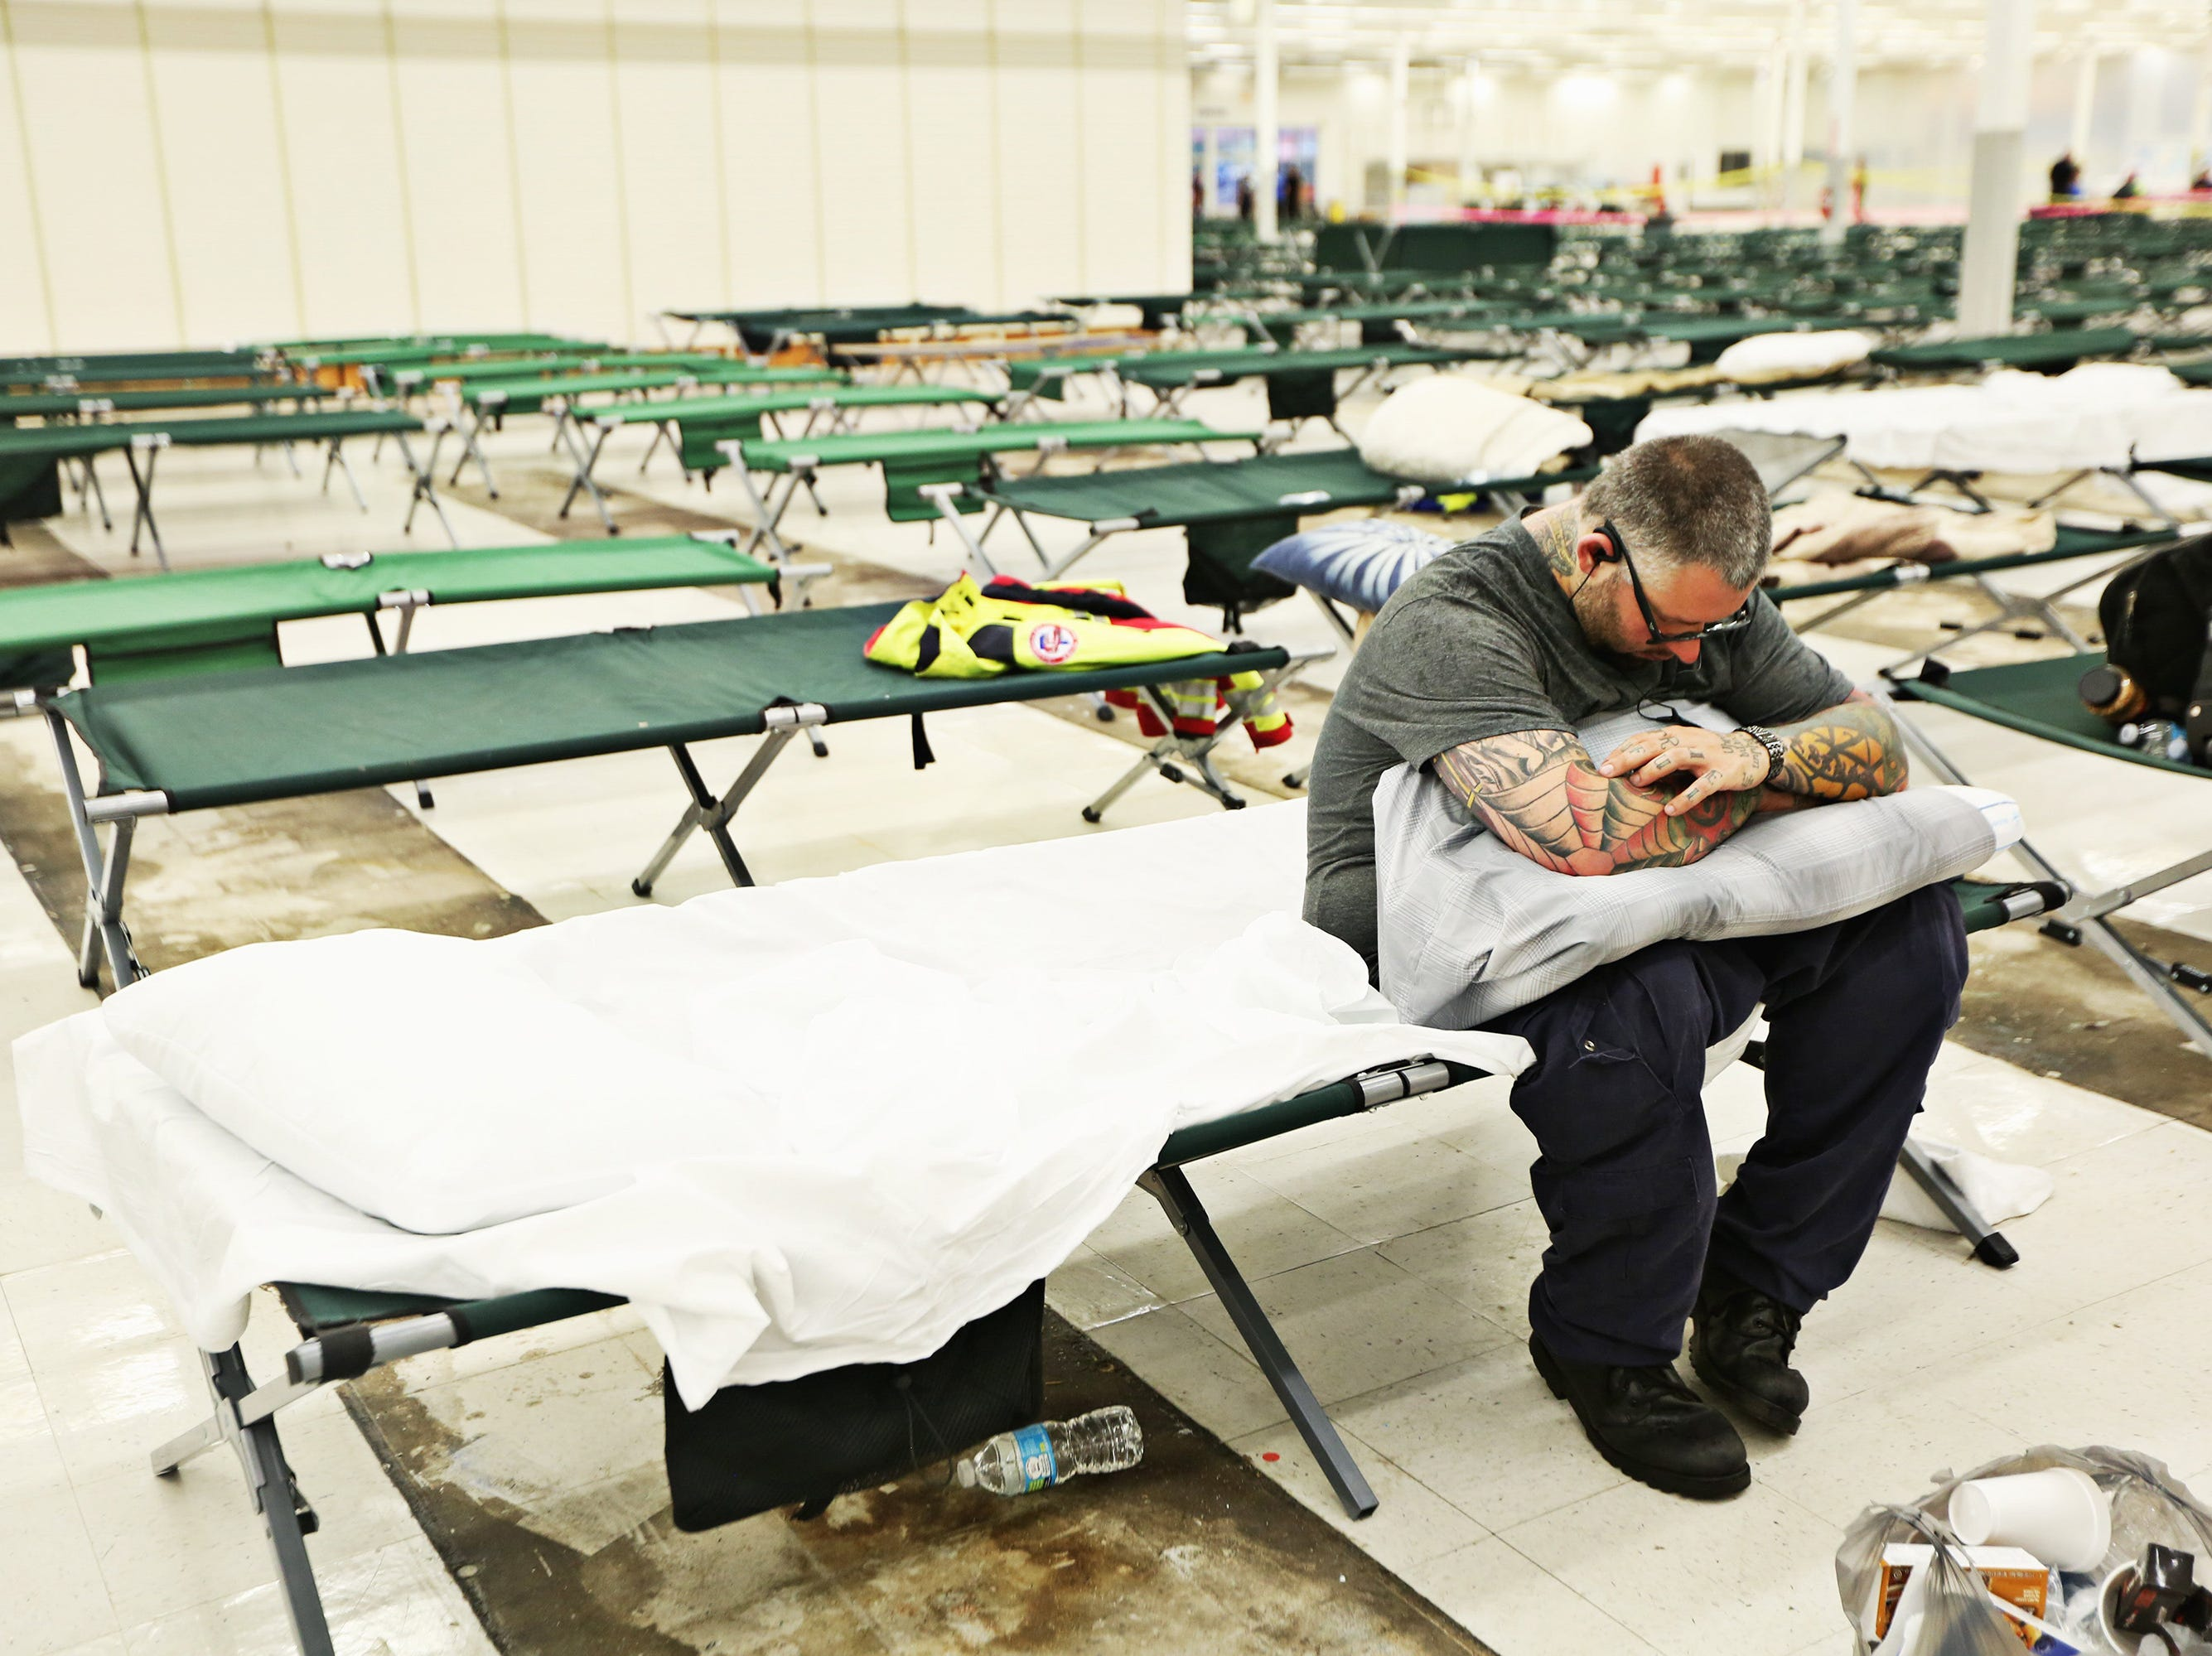 Raffi Hovsepian, a critical care paramedic with All County Ambulance, plugs in earbuds and tries to relax Friday morning, Sept. 14, 2018, in an old Kmart in Garner used as a makeshift shelter for first responders traveling to the state from other areas to wait for assignments to help with Hurricane Florence. Hovsepian travelled with a crew of four men from Ft. Pierce, Fla. (Juli Leonard/The News & Observer/TNS)